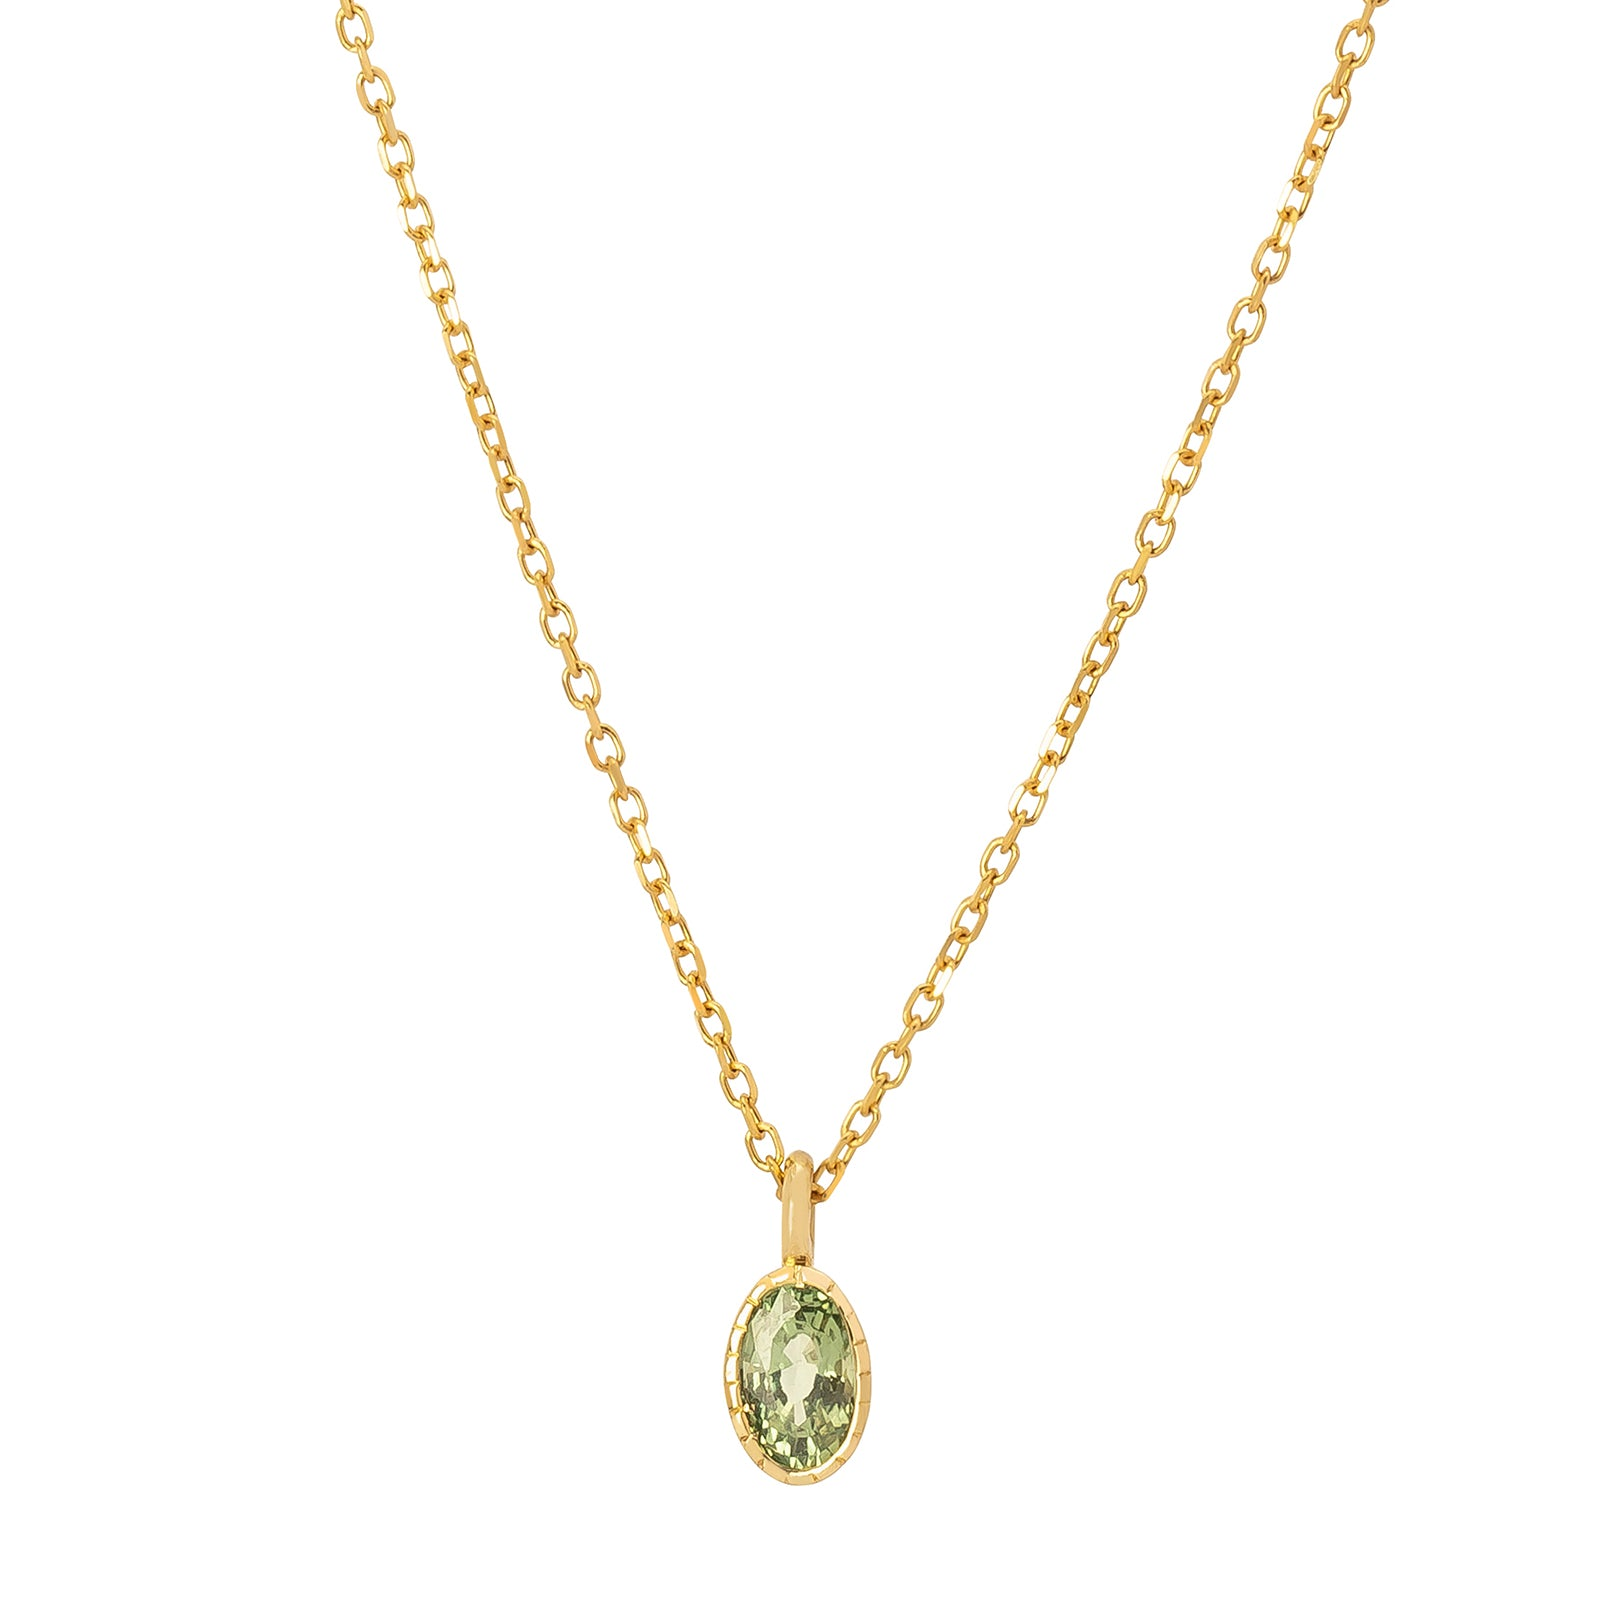 Jennie Kwon Oval Wisp Necklace - Green Sapphire - Necklaces - Broken English Jewelry